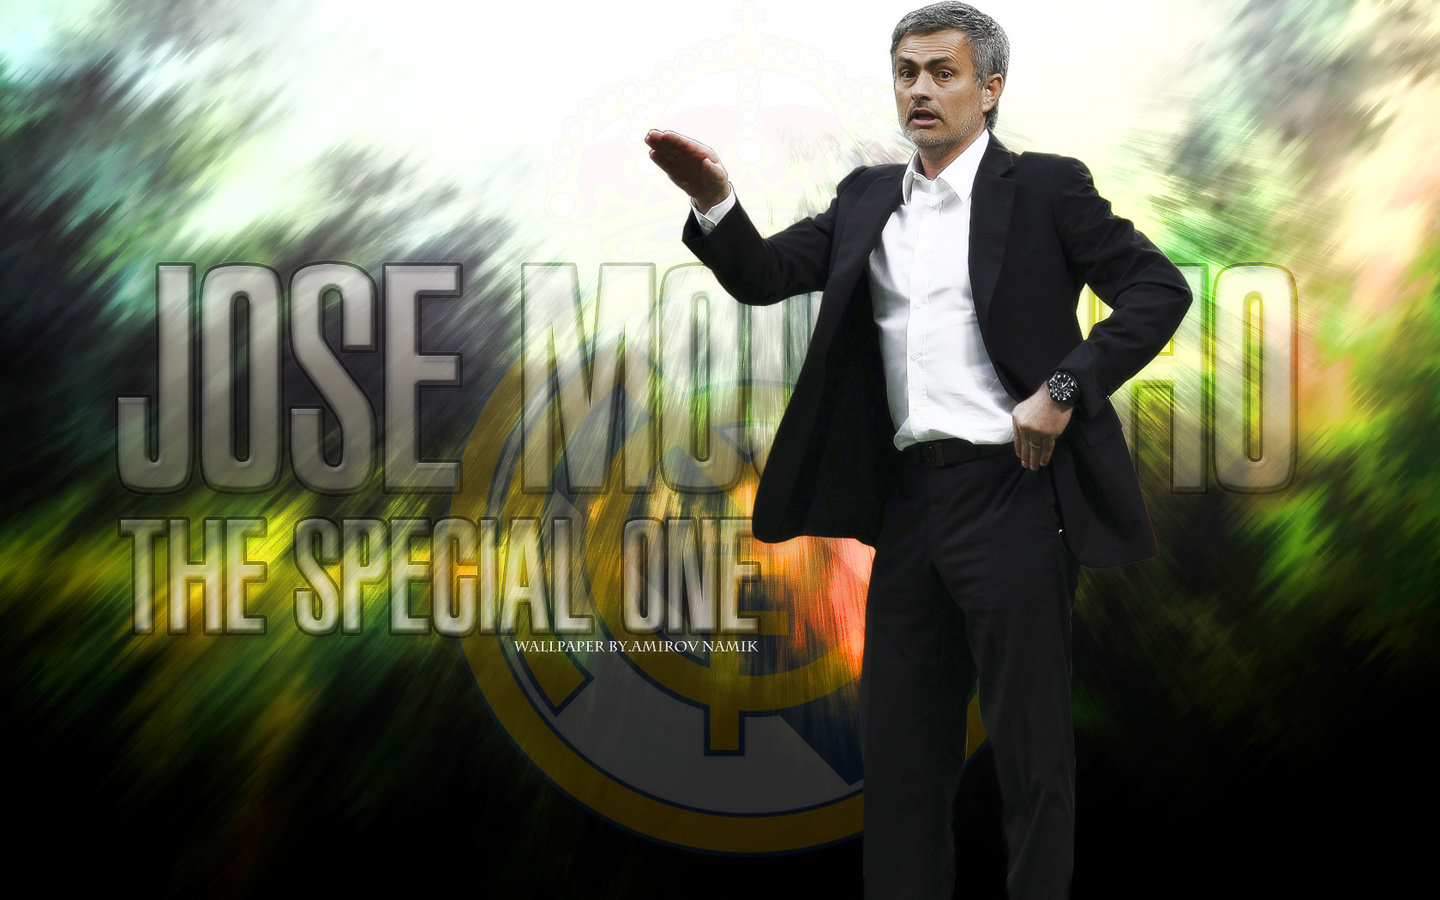 Jose Mourinho Wallpaper The Special One Jose Mourinho The Special One